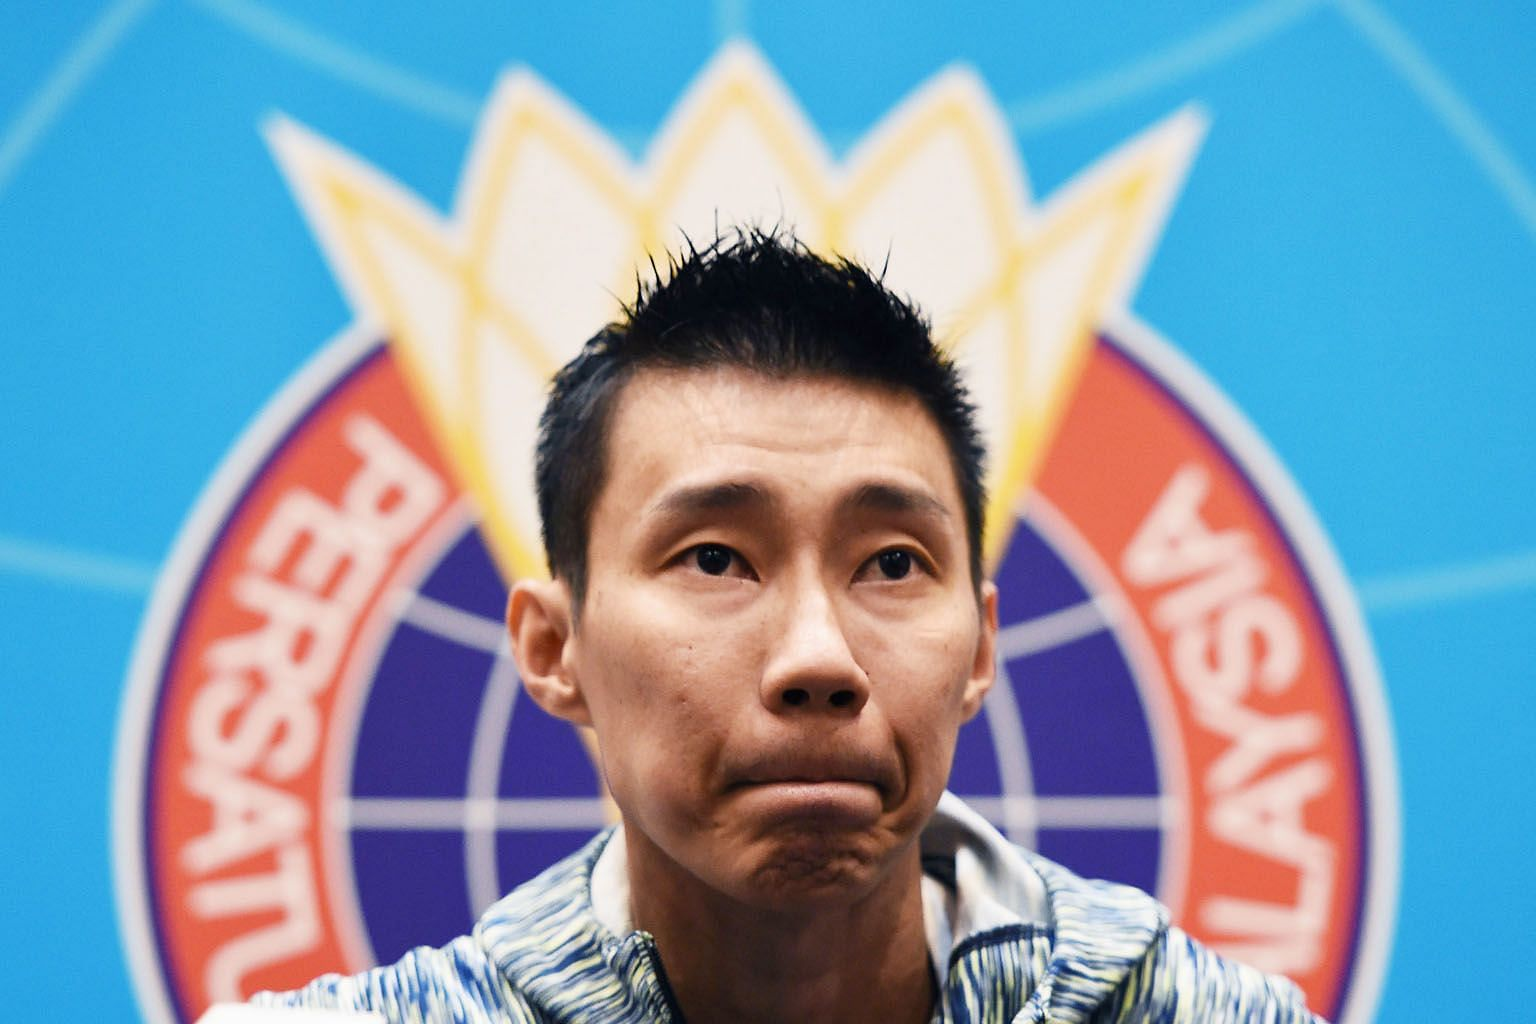 Malaysian veteran star Lee Chong Wei acknowledged at yesterday's press conference in Kuala Lumpur that while his dream was to play in the next Olympics, he might have to call it a day if he did not regain his health fully.